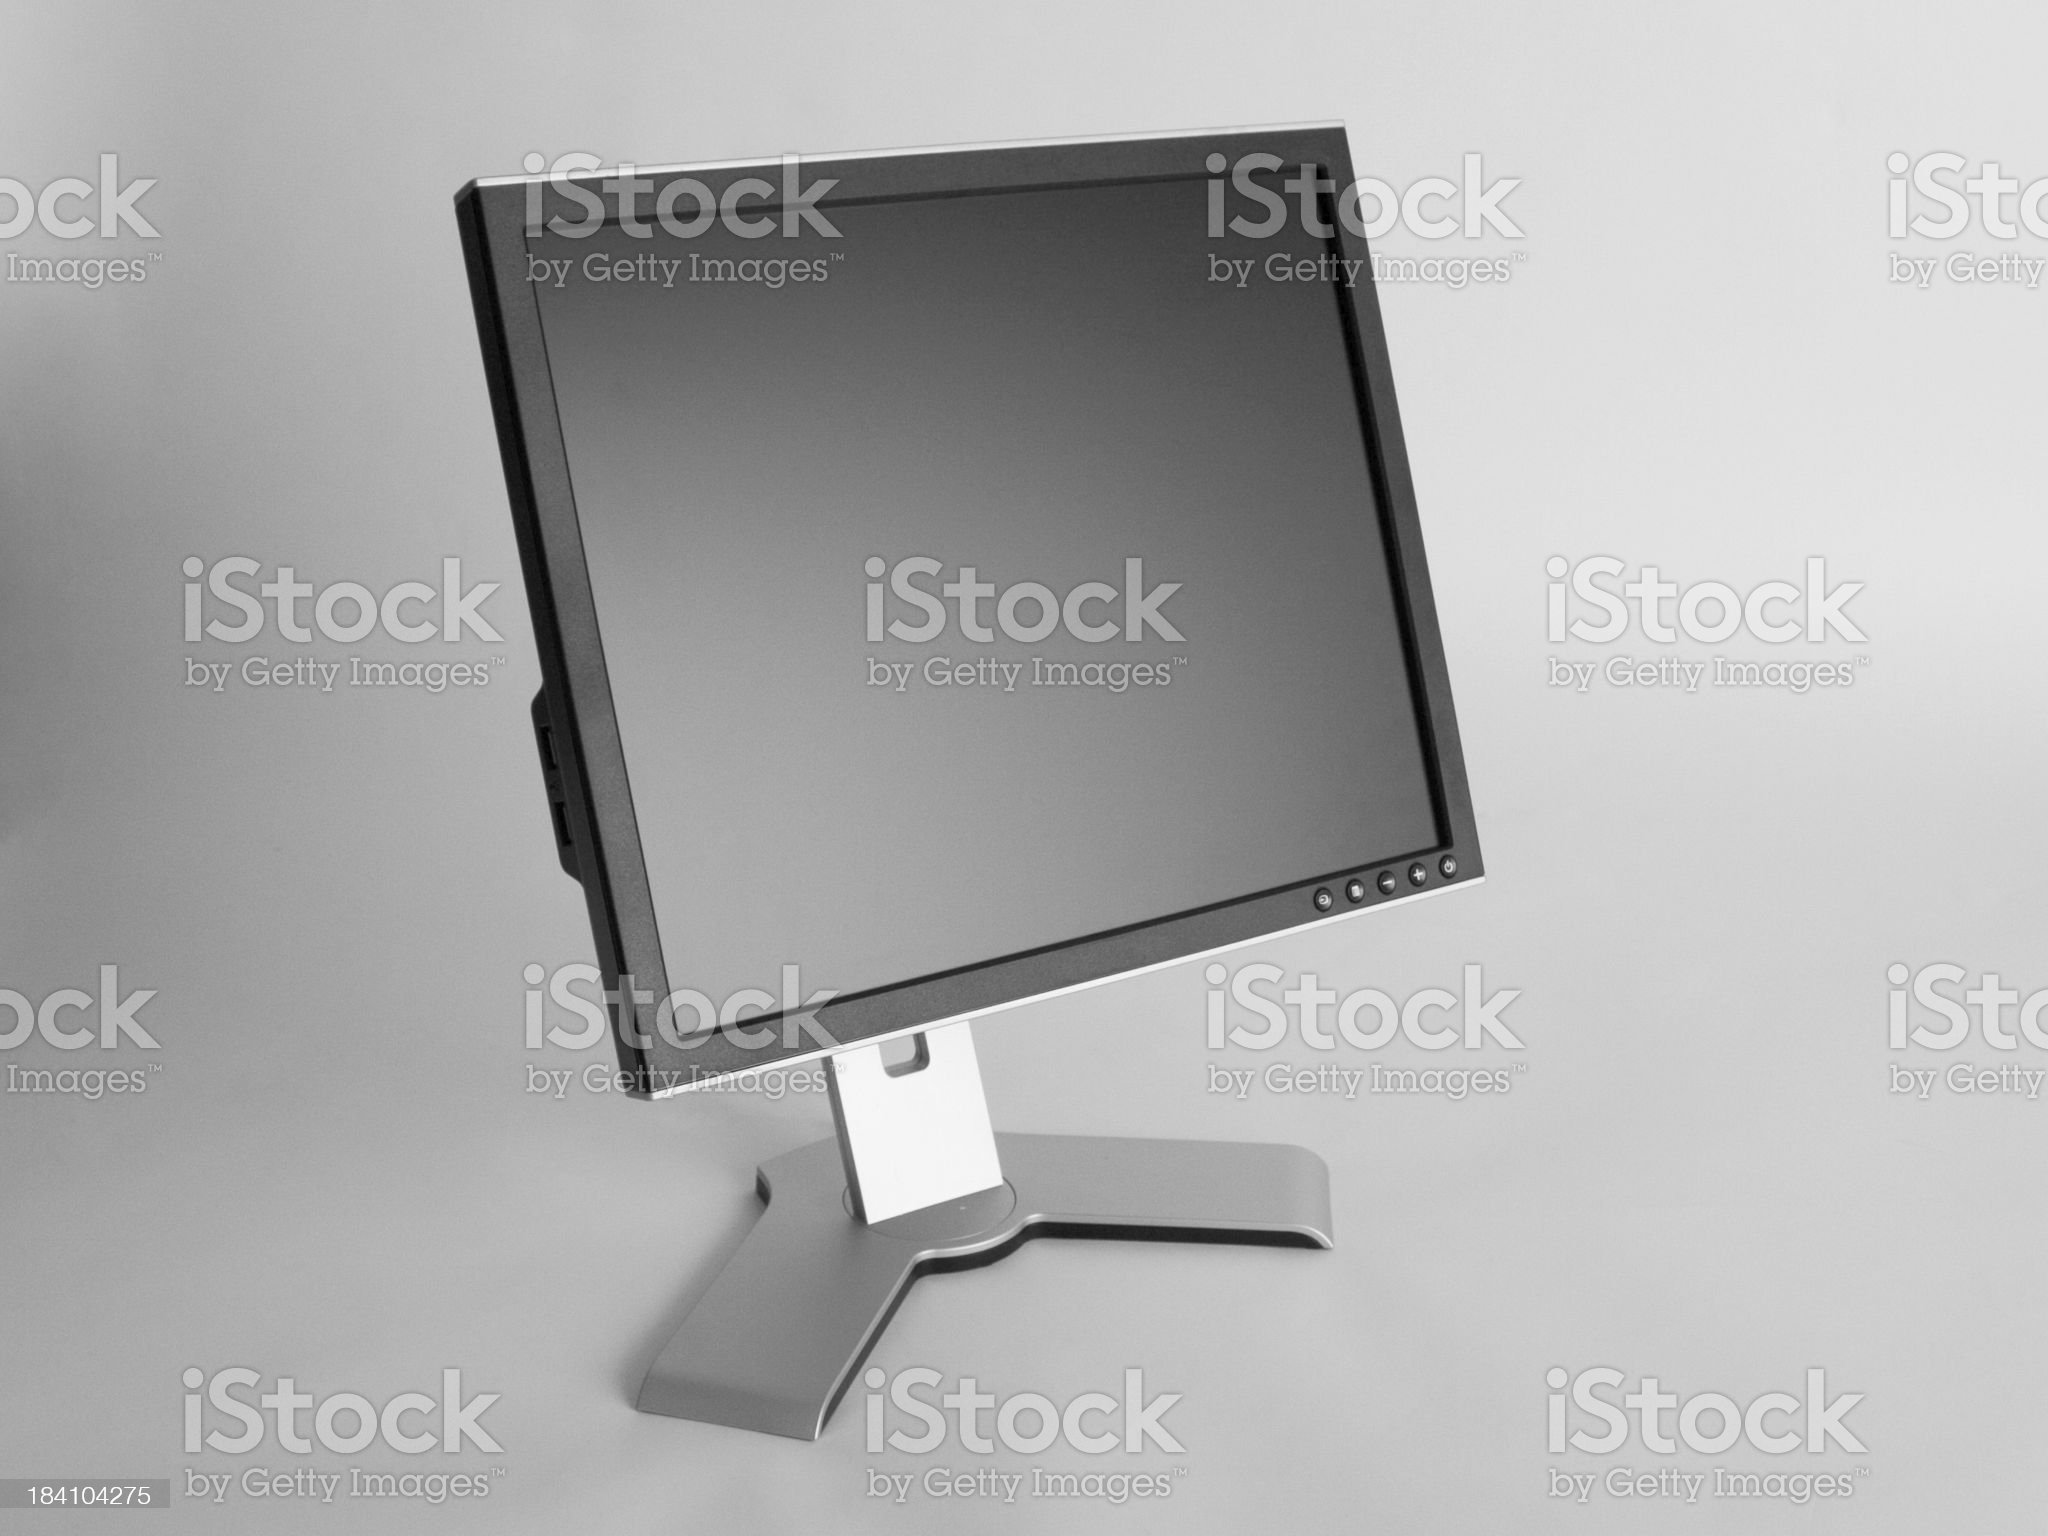 Black & Silver LCD Monitor with Modern Styling royalty-free stock photo